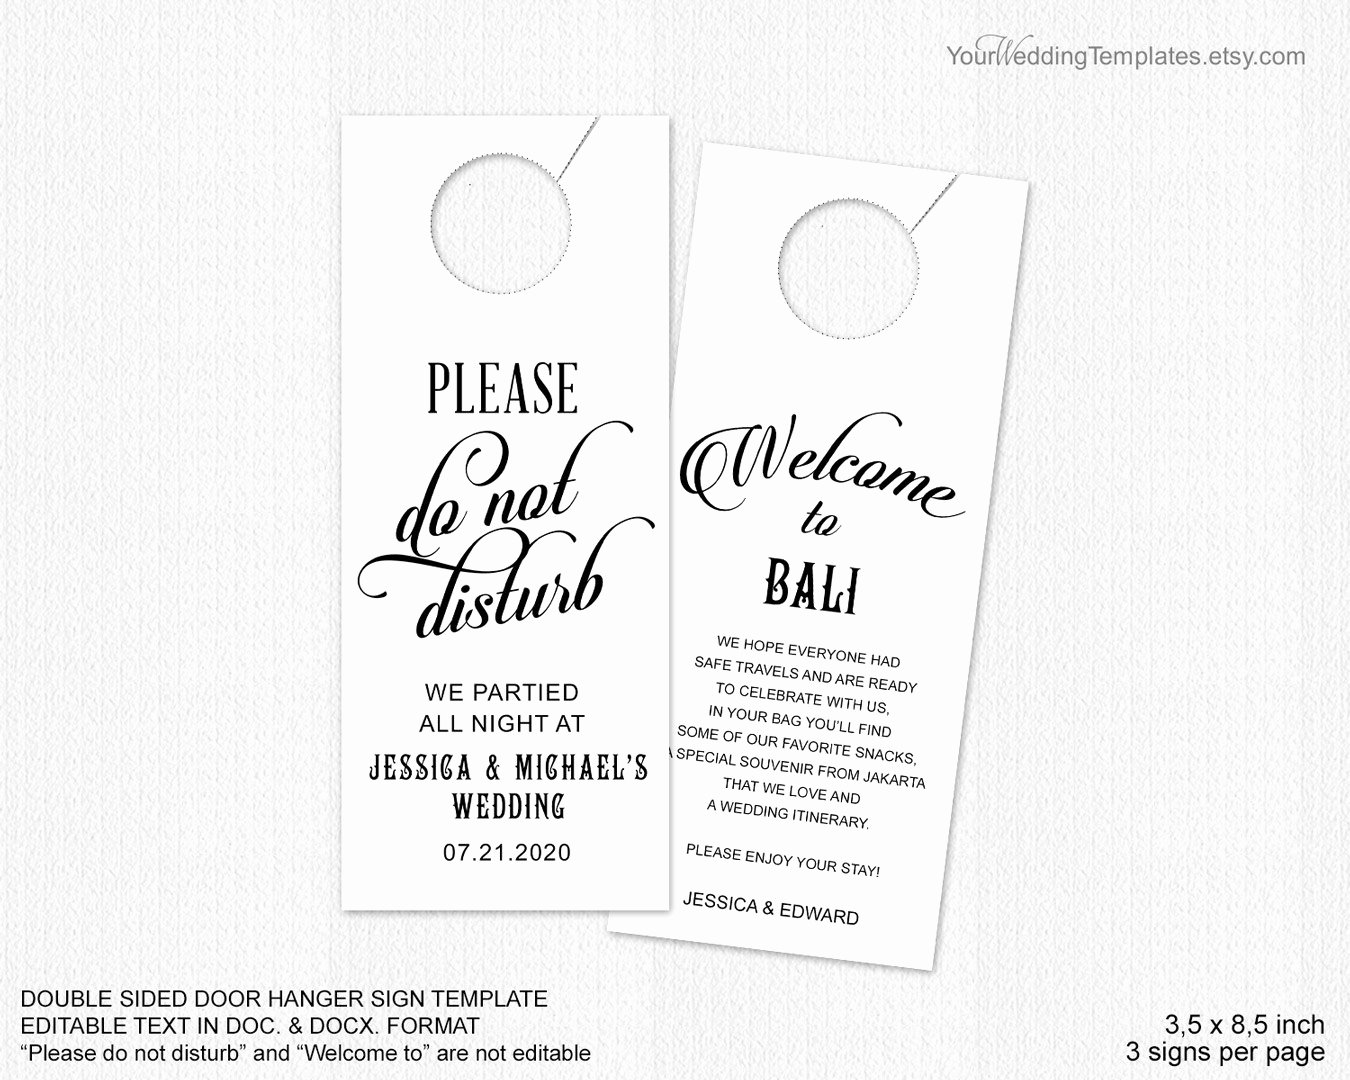 Door Hanger Template Illustrator Unique Bruiloft Deur Hanger Template Niet Storen Deur Hanger Sign